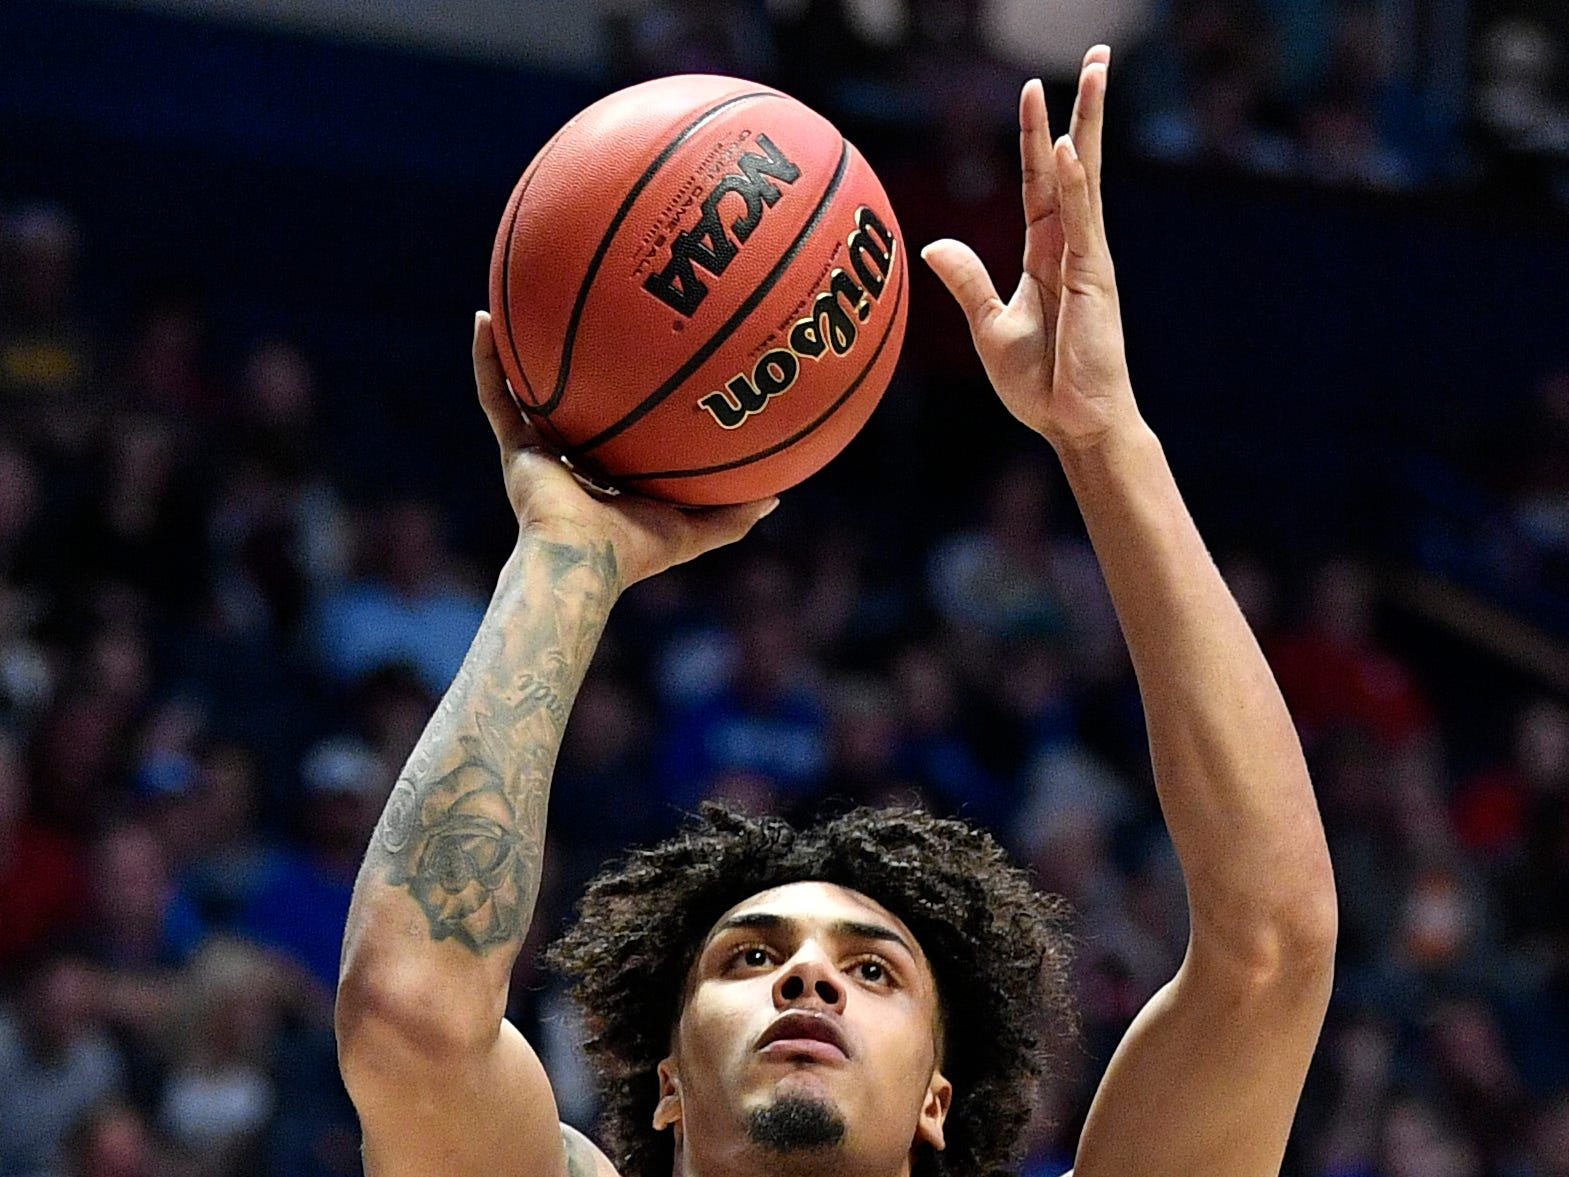 Texas A&M guard Brandon Mahan (13) takes a shot during the first half of the SEC Men's Basketball Tournament game  against Mississippi State at Bridgestone Arena in Nashville, Tenn., Thursday, March 14, 2019.